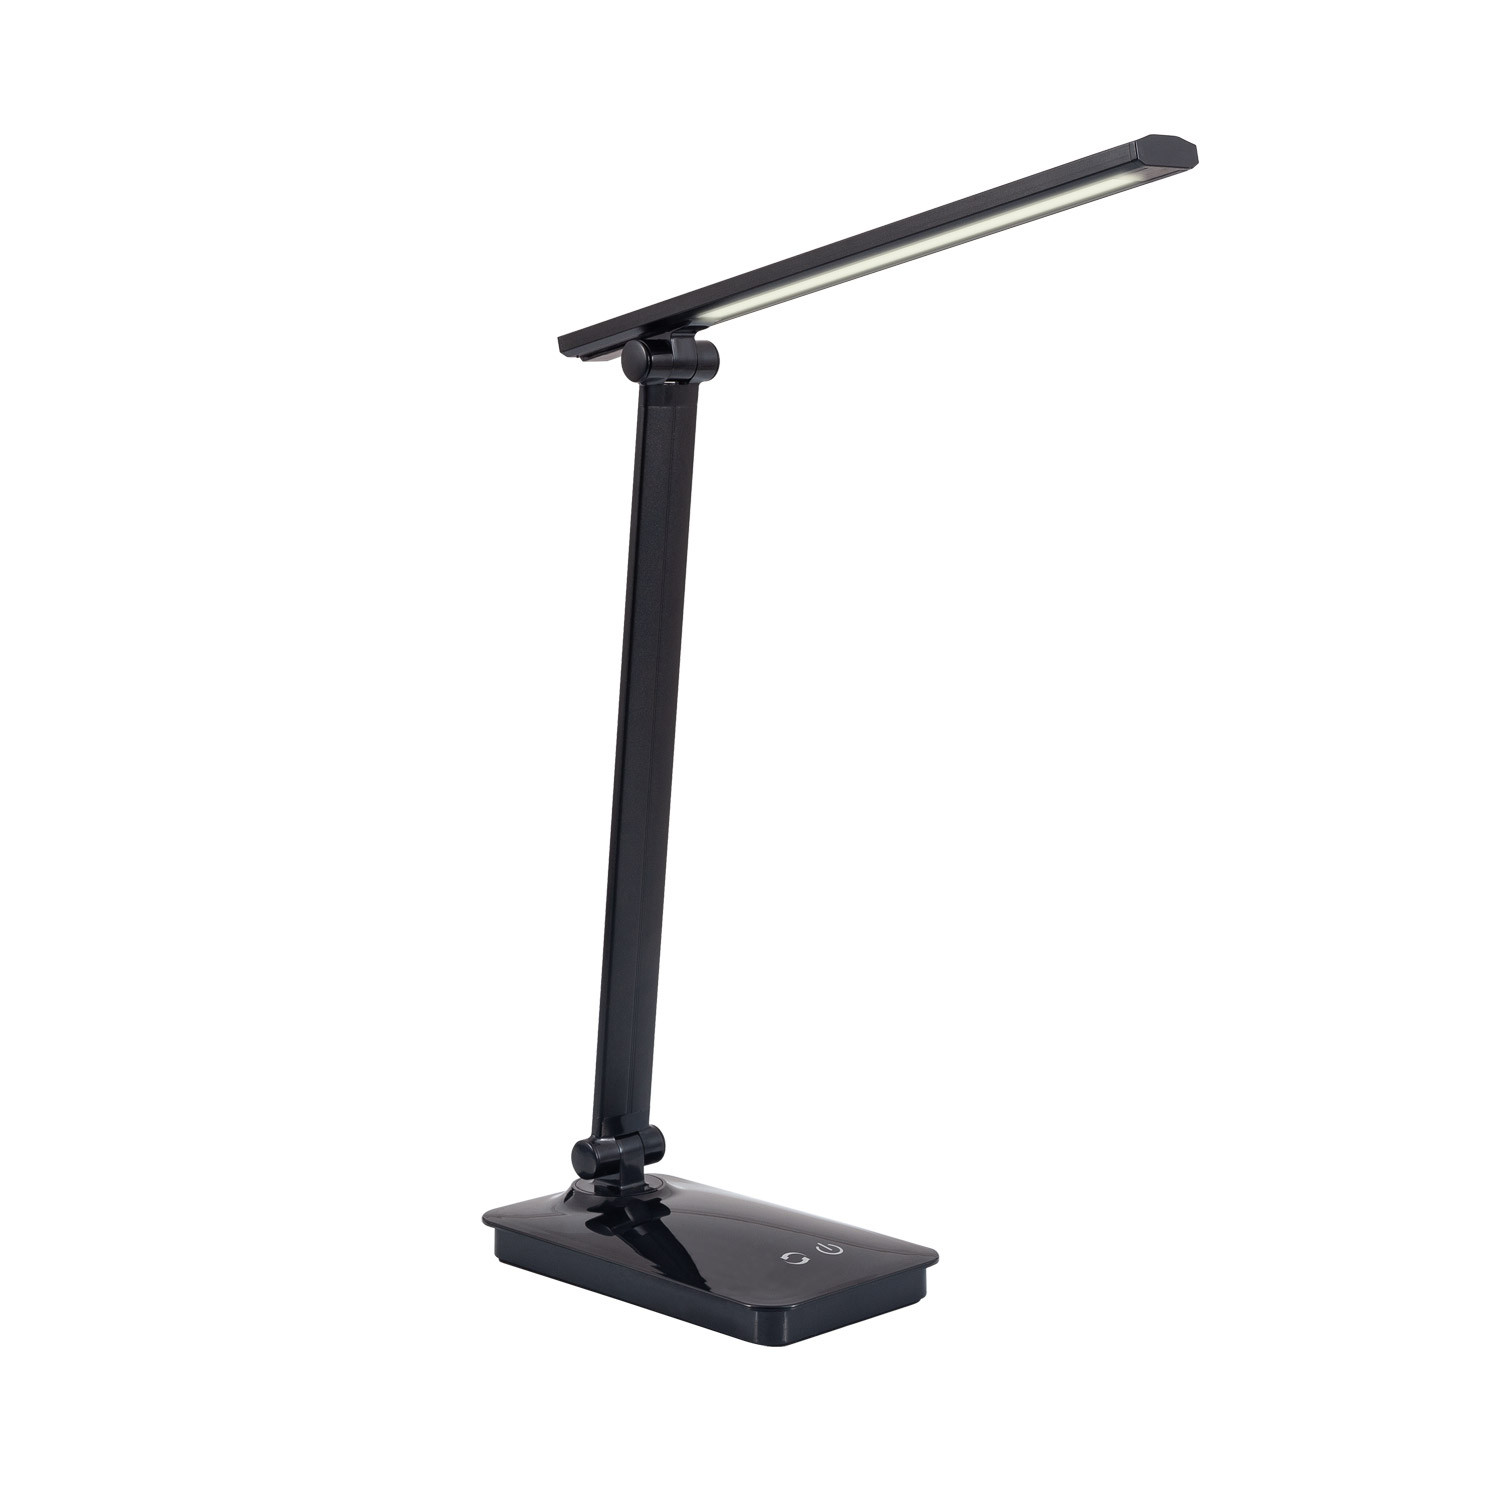 TECHBREY Flexo LED Harbin Dimmable CCT Selectable 5W With USB Table Lamp, Desk Organizer Office Auxiliary